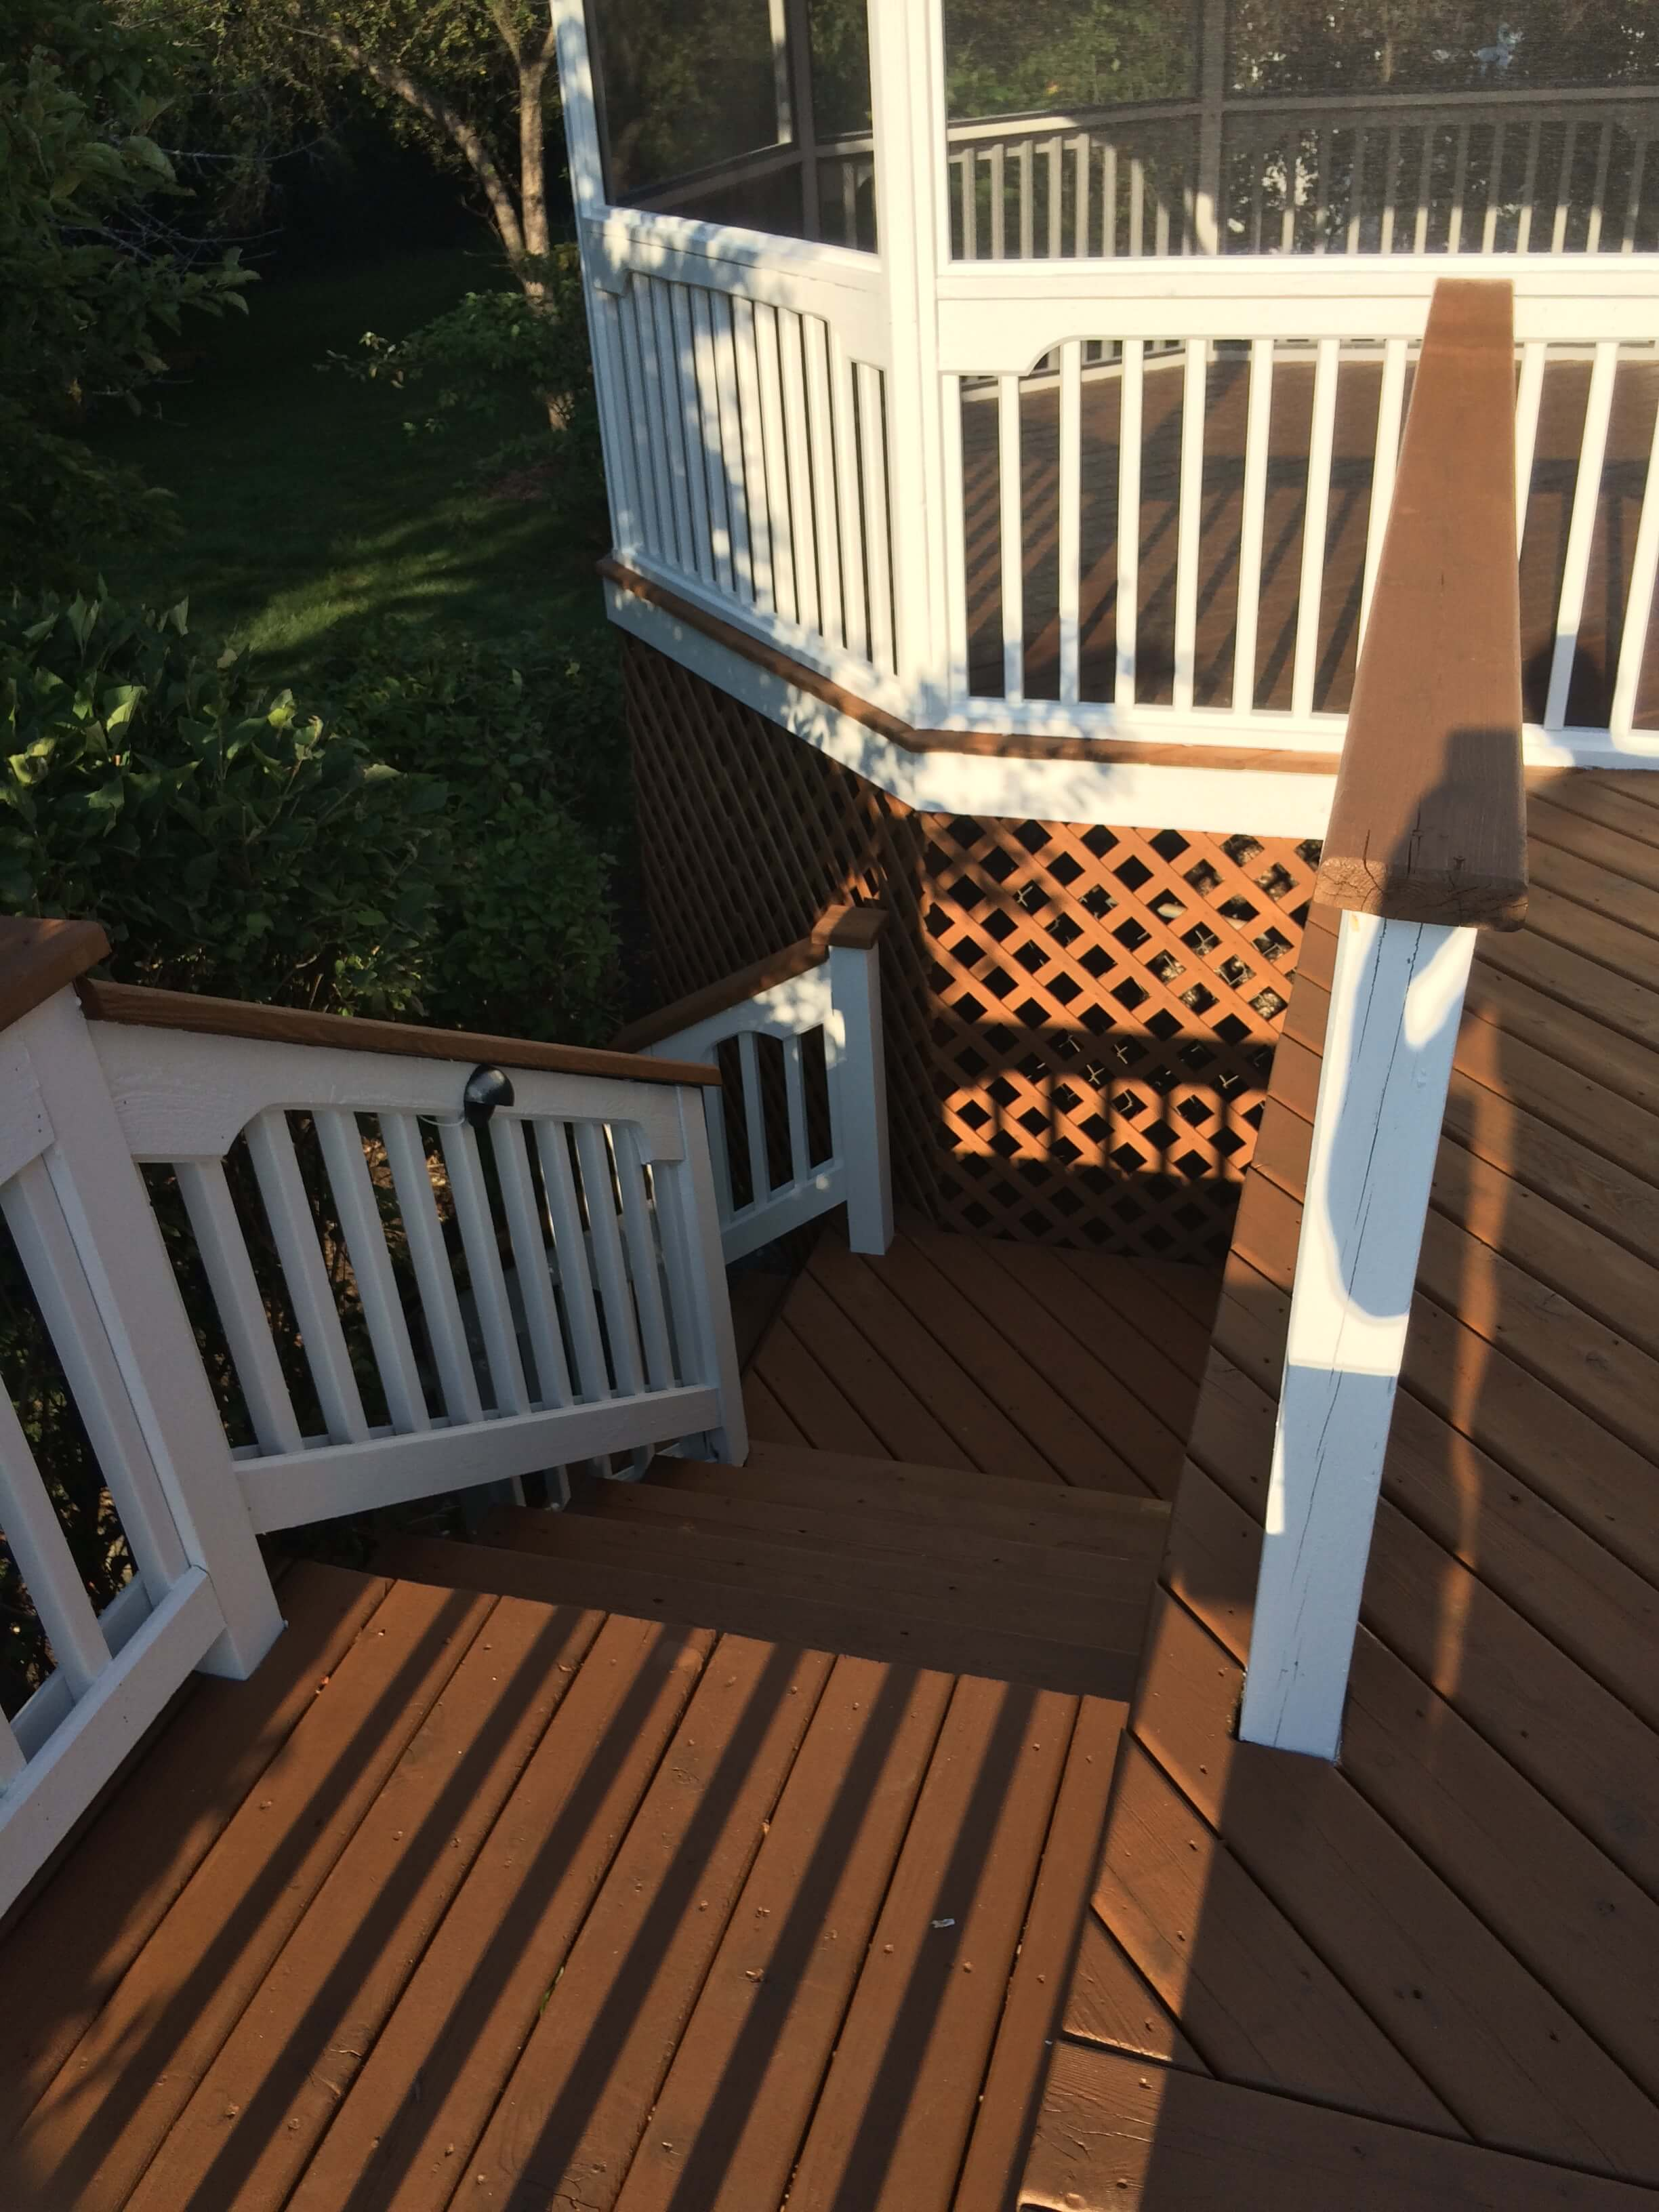 Stairs and screened in gazebo that have been recently painted.